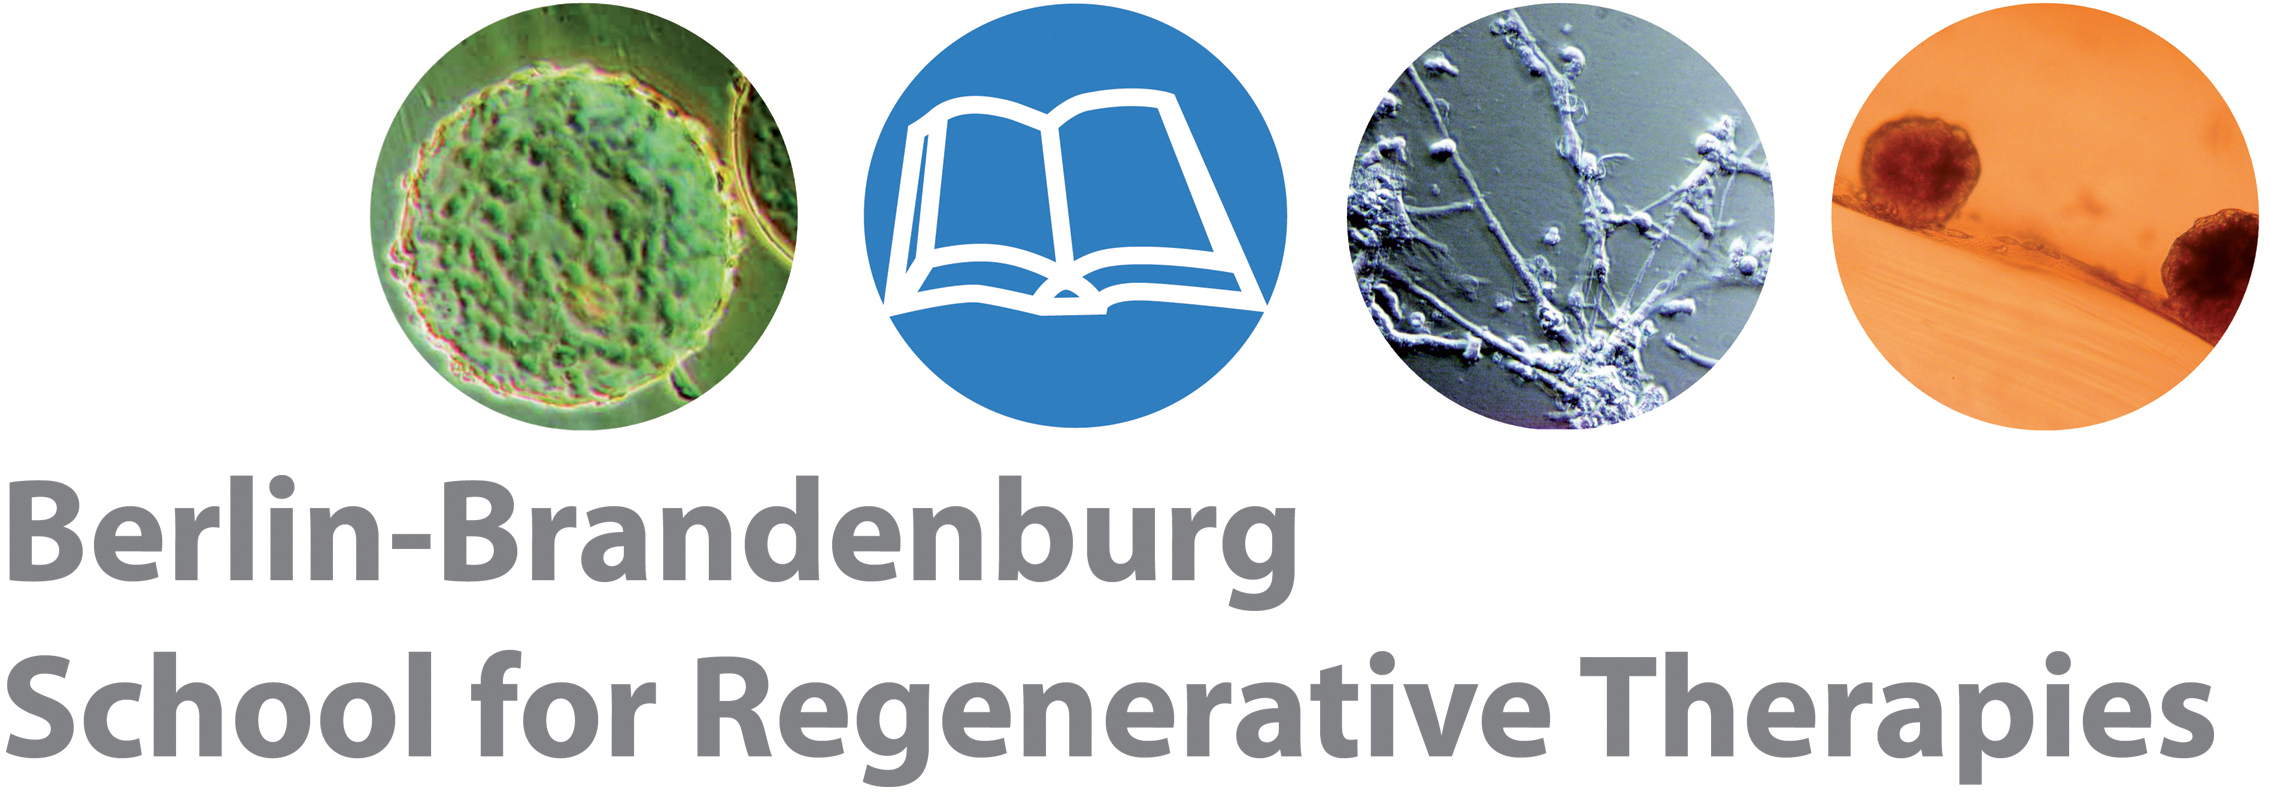 Logo of the Berlin-Brandenburg School for Regenerative Therapies